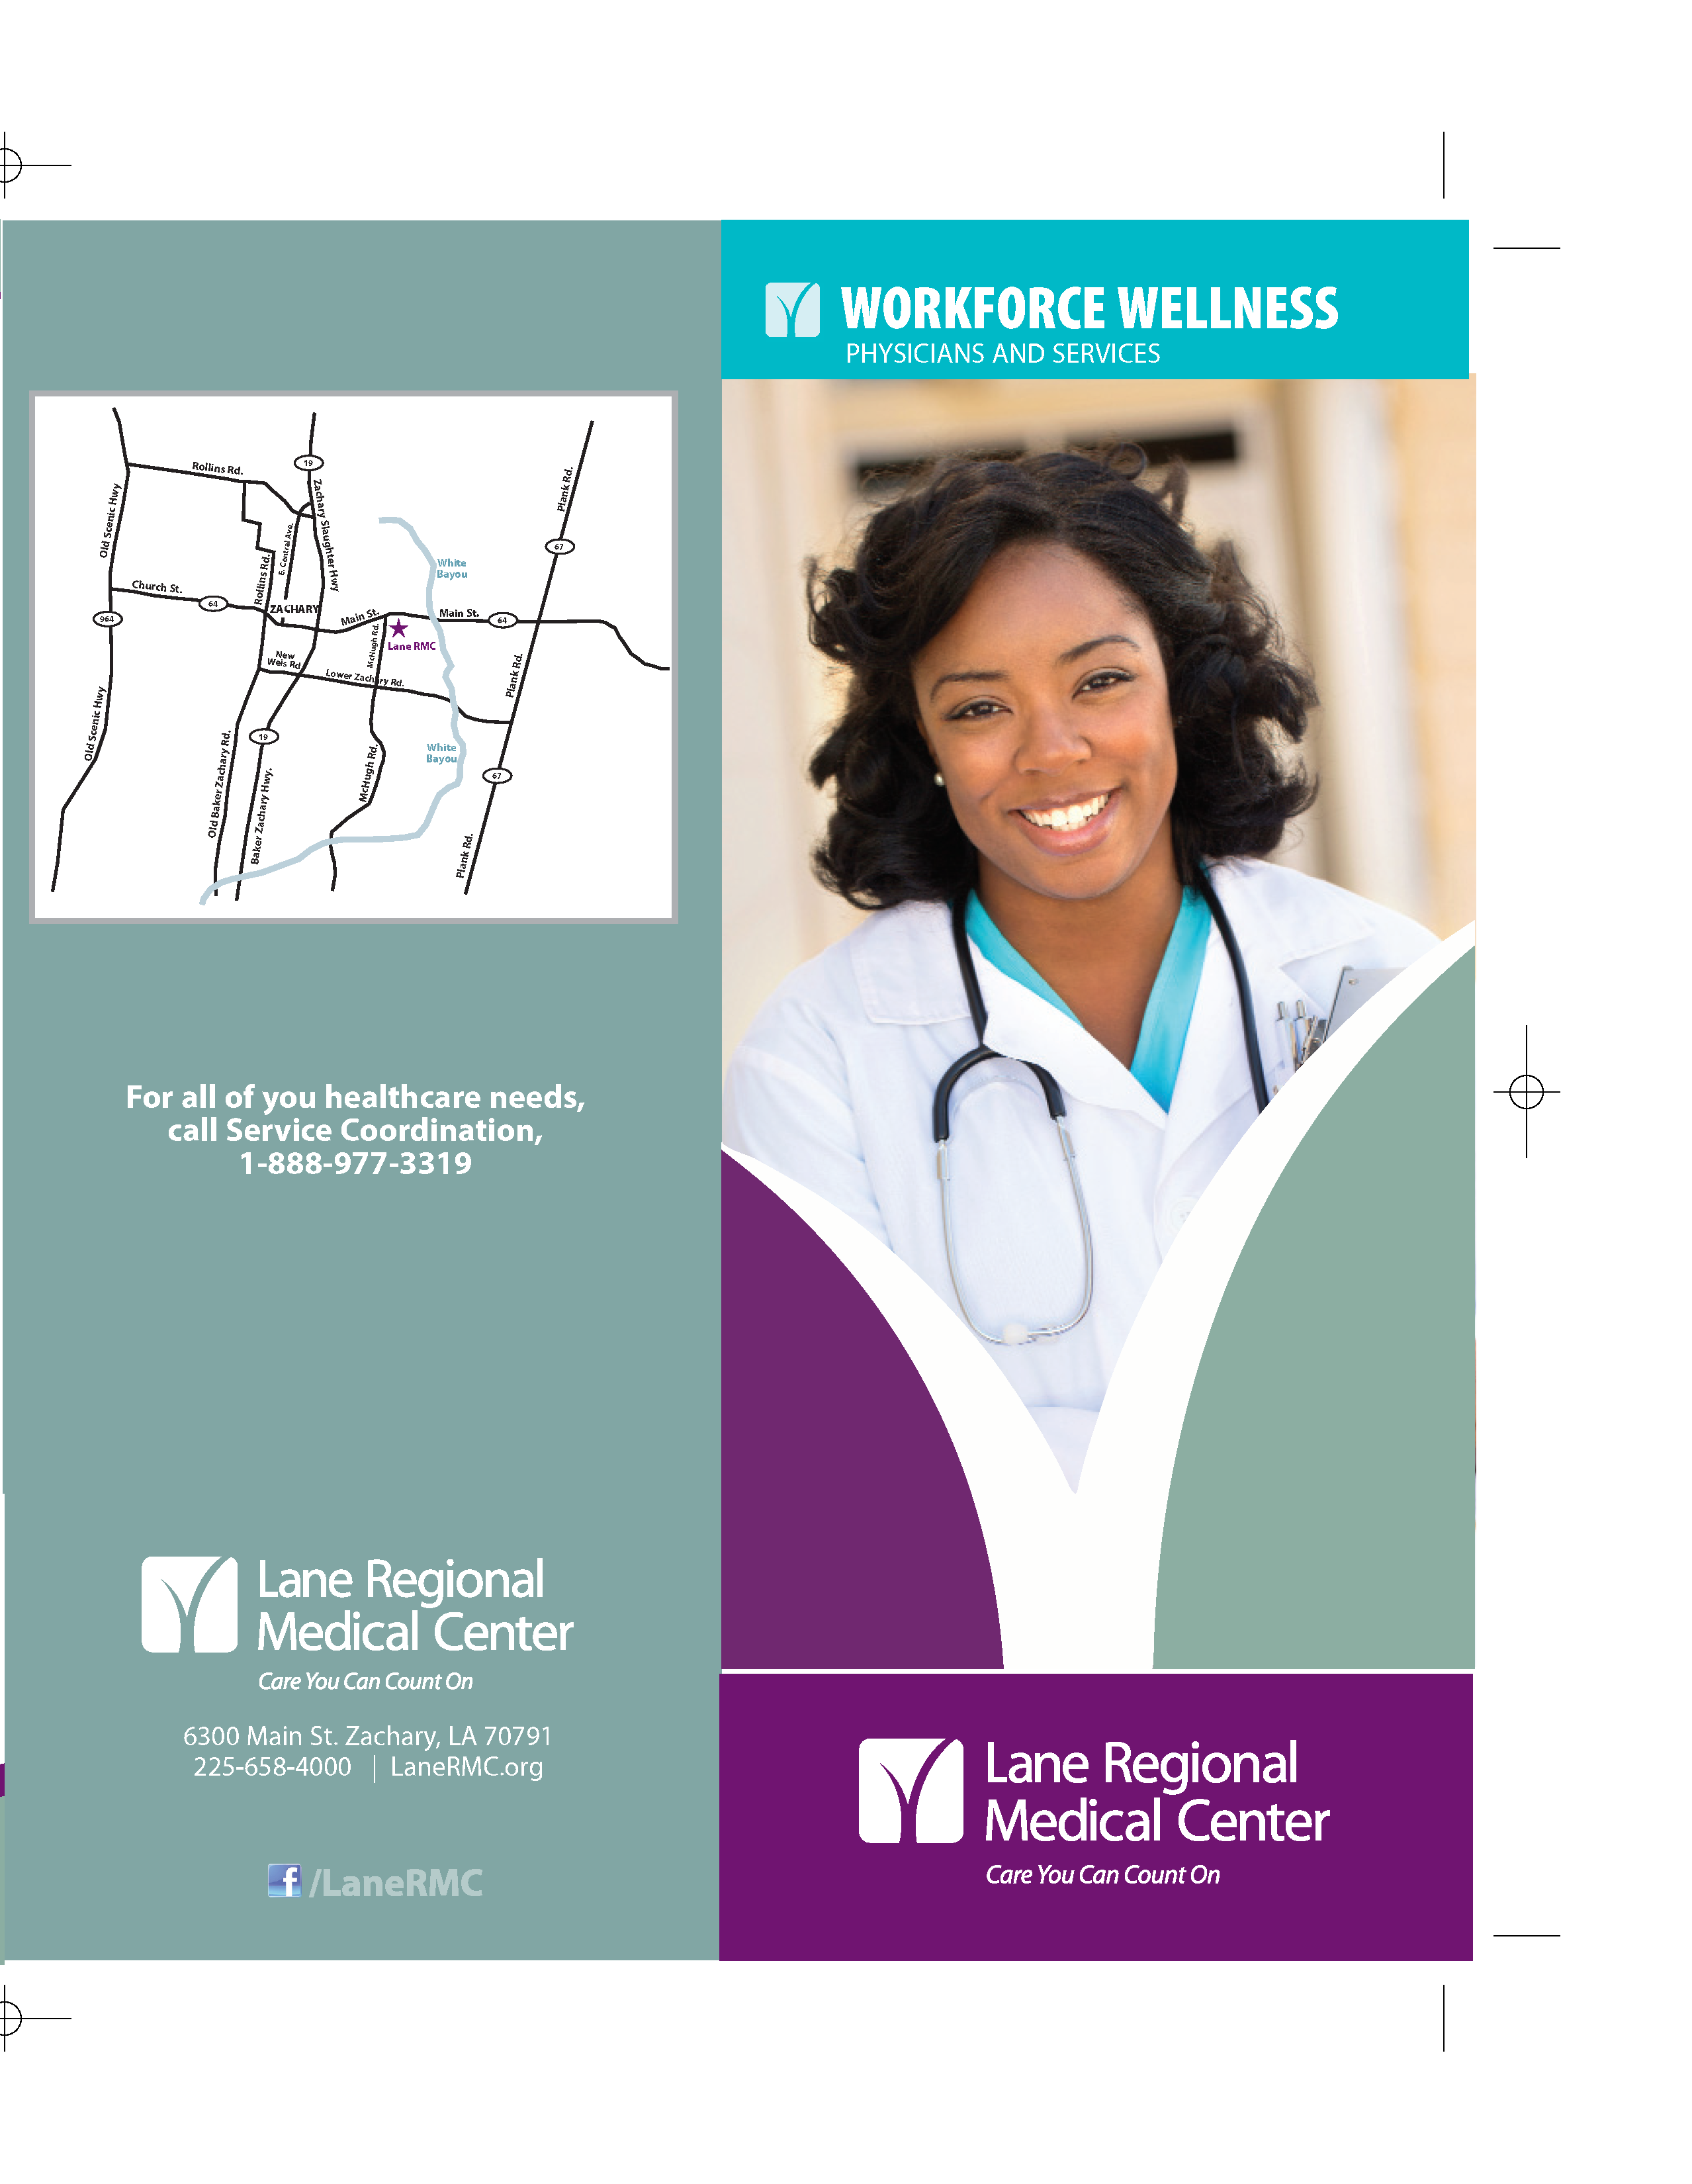 Workforce Wellness Physicians and Services